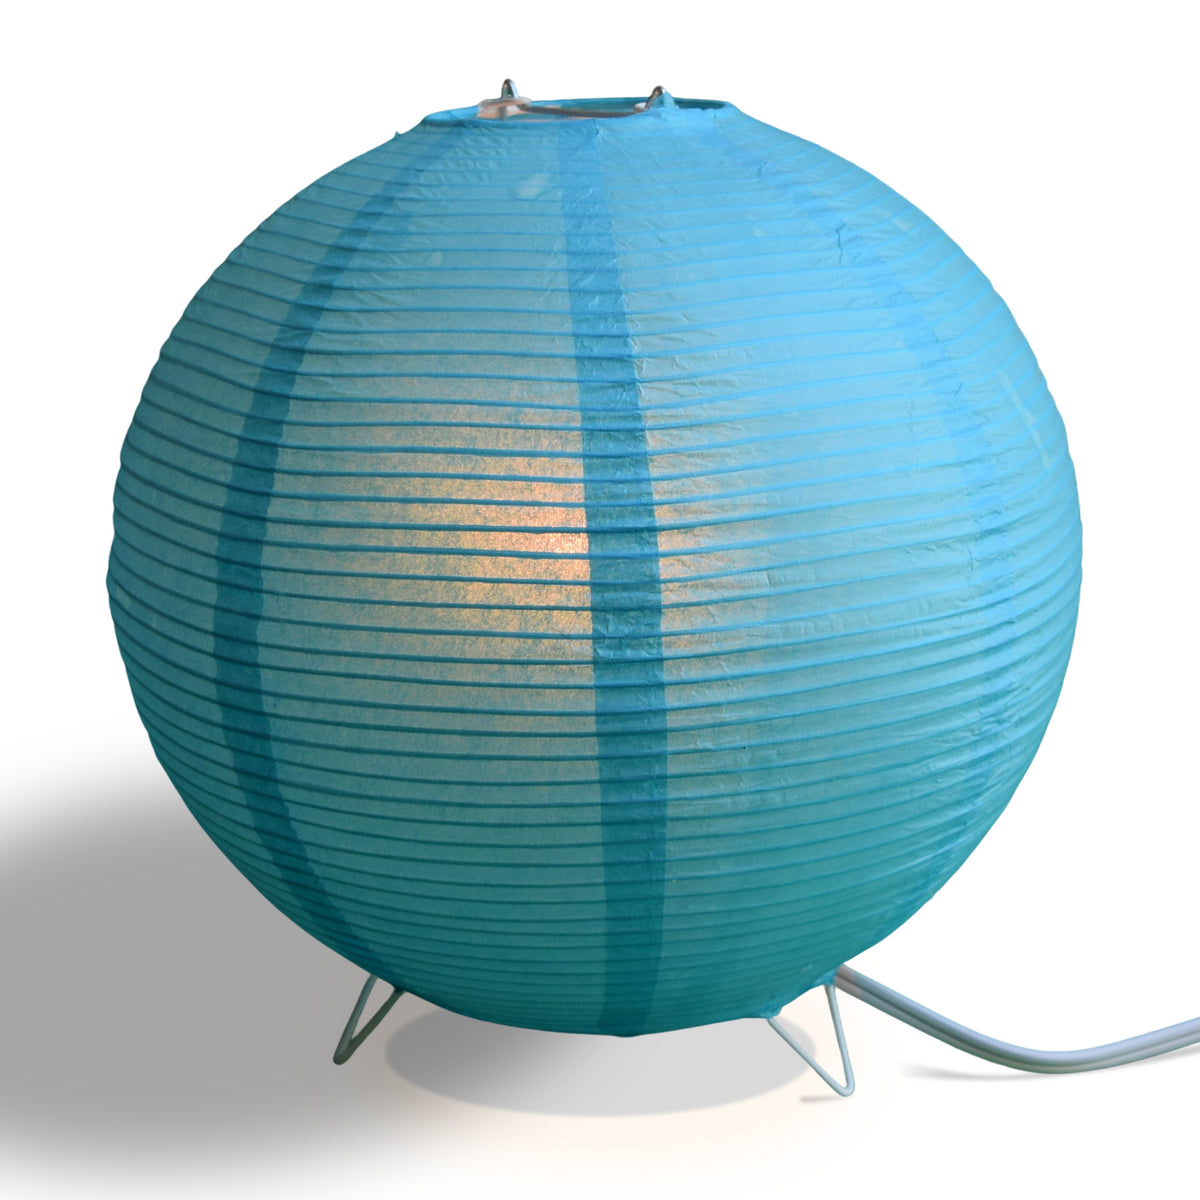 Turquoise Blue Corded Round Table Top Lantern Lamp Kit w/ Light Bulb, Fine Lines